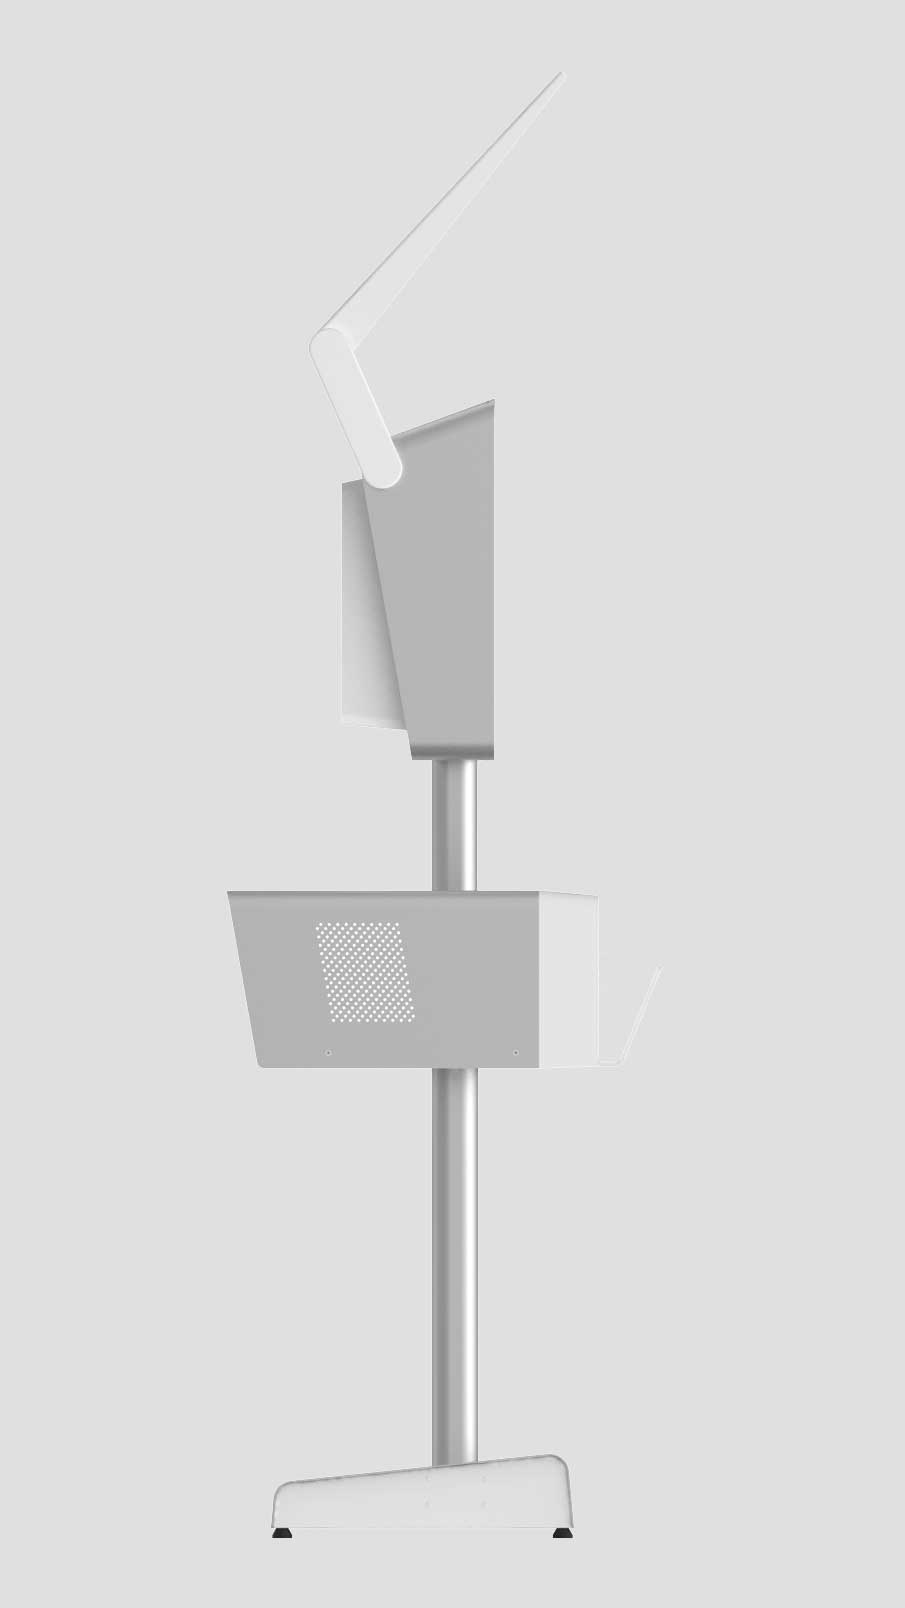 "Queso Tech Specs - Fully Extended Height: Approximately 84"" Long Pole Only Height: Approximately 65"